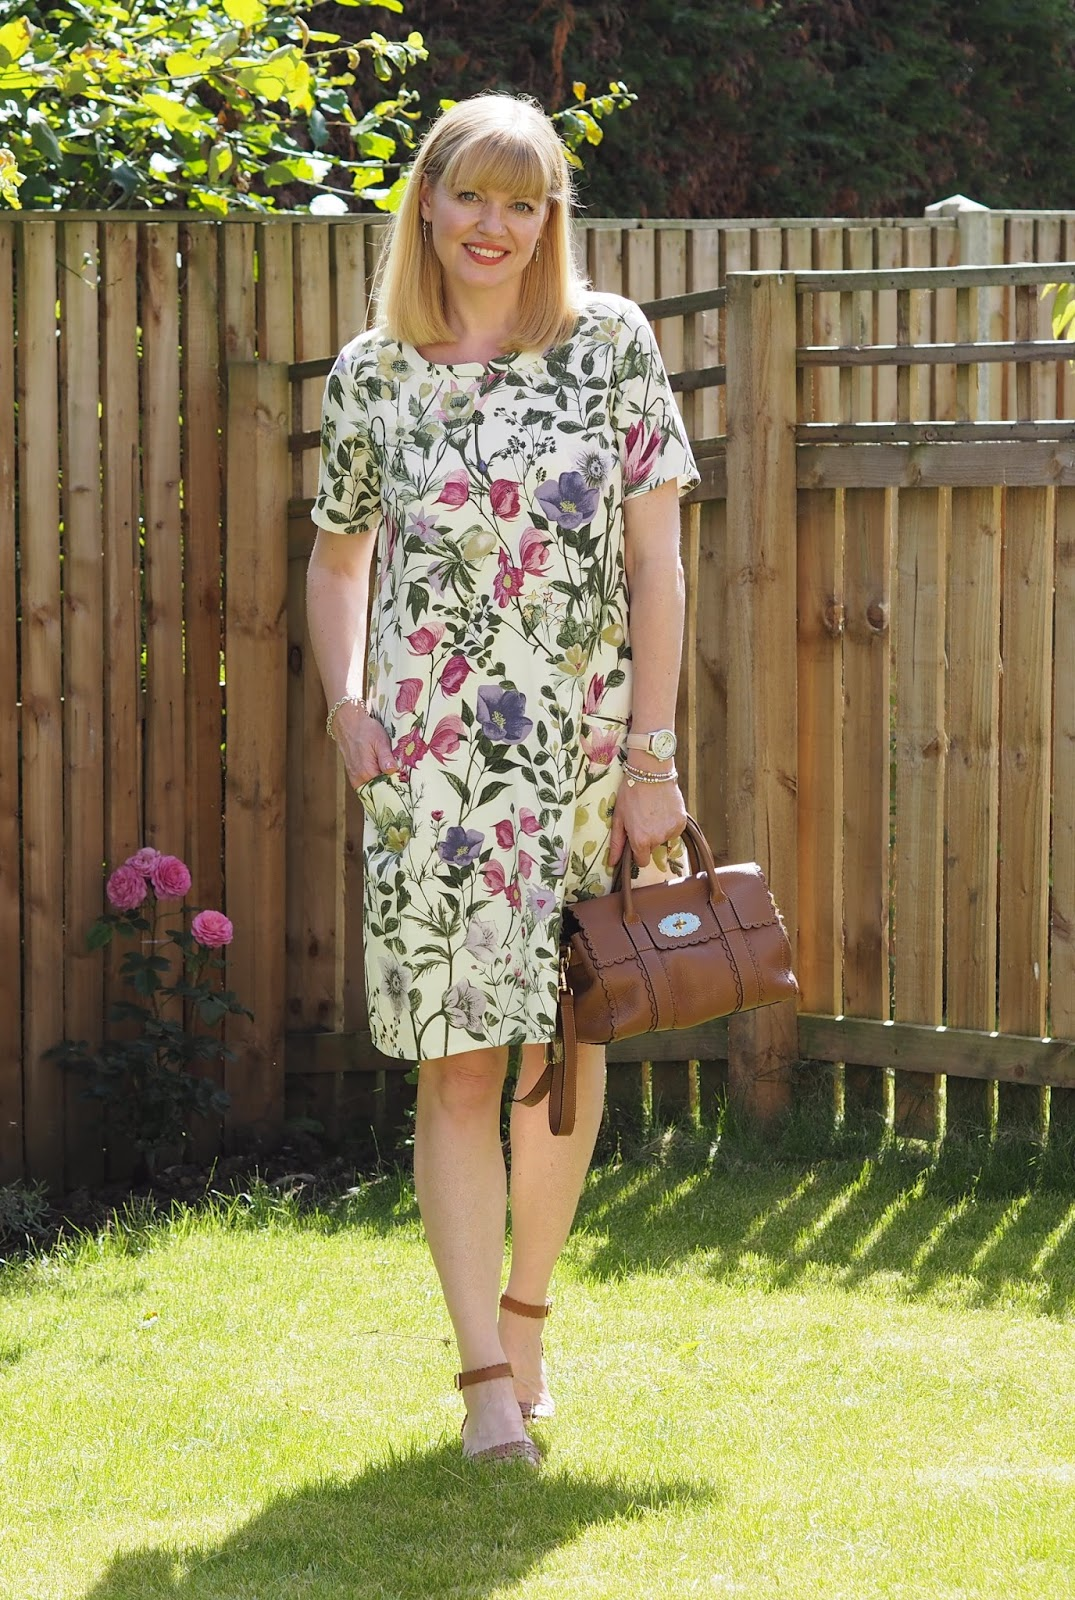 Braintree eco-fashion botanical floral dress